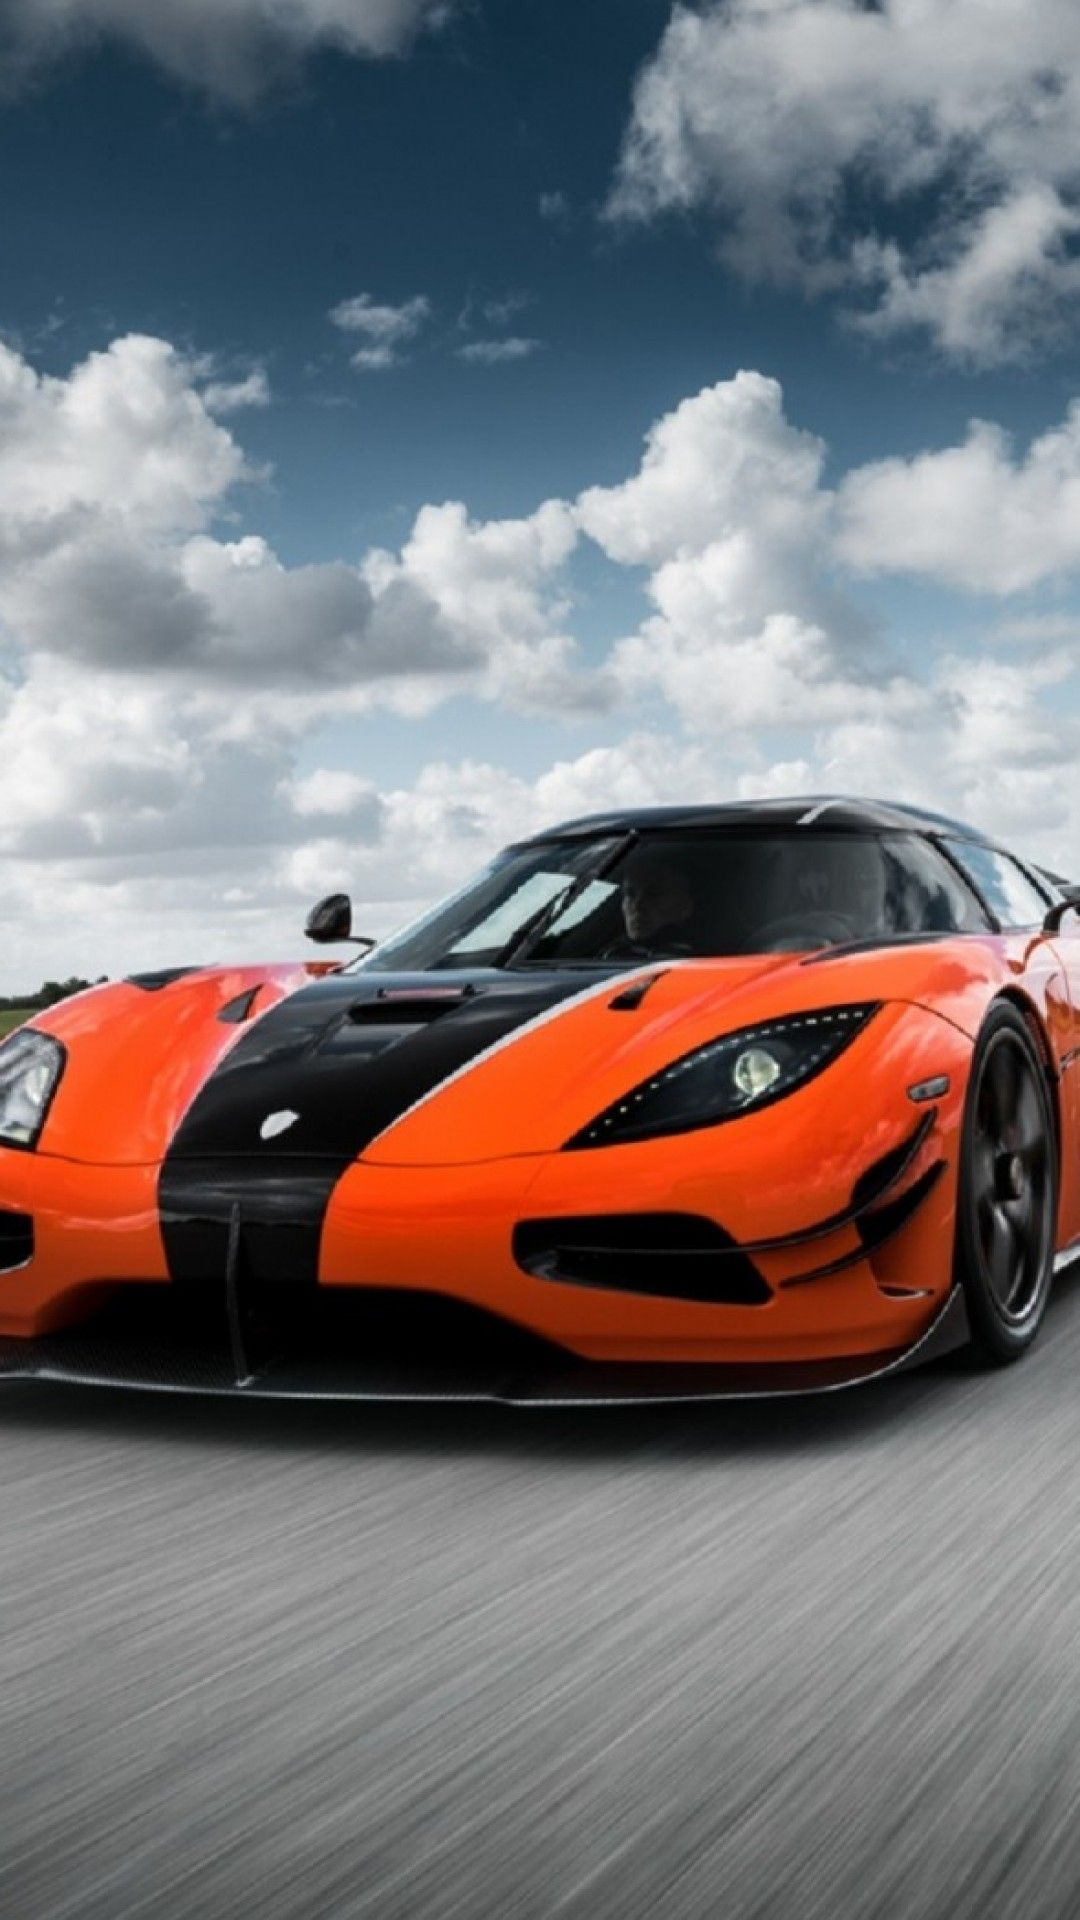 Pin by Stuva7 on Cars Koenigsegg, Cool sports cars